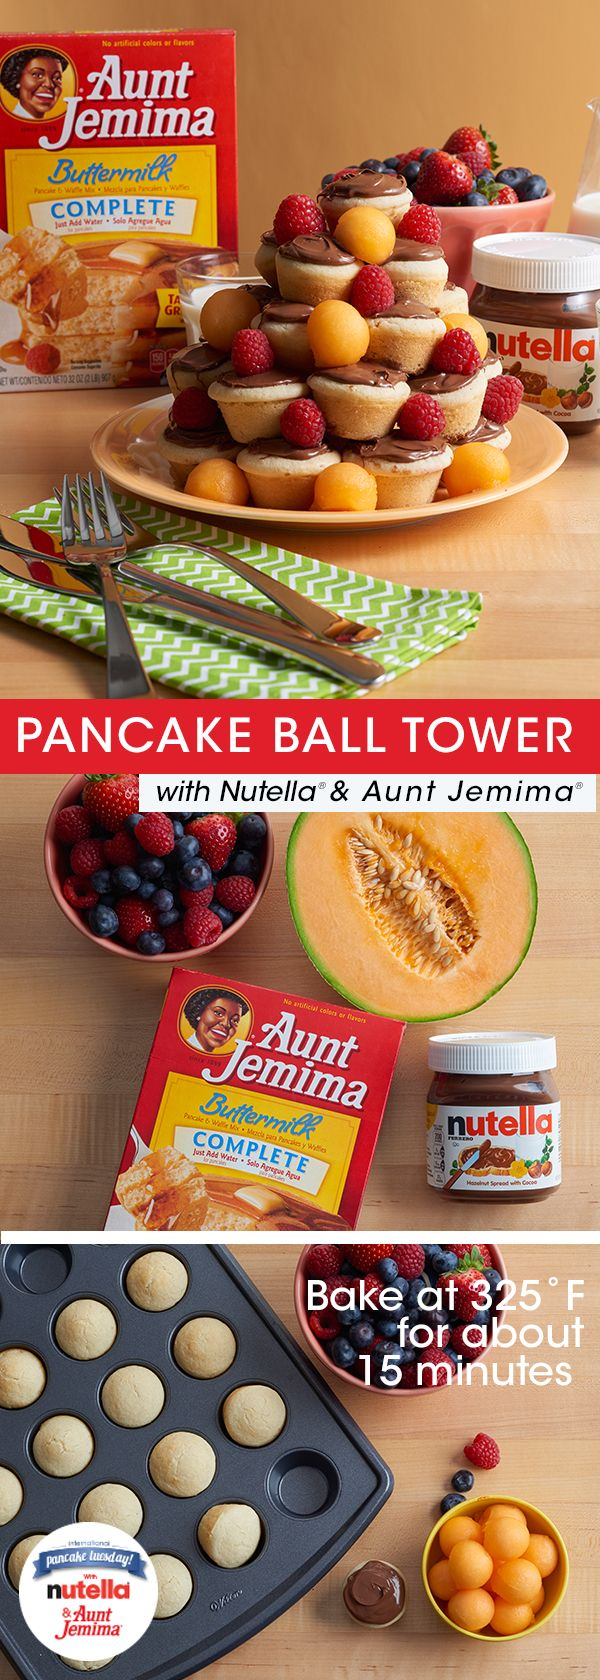 The way to anyone's heart this February? Definitely a pancake ball tower with Nutella®. Grab your Aunt Jemima® pancake mix and prepare a batch of batter. Fill a mini muffin tin and bake at 325˚F for 15 minutes or until cooked through. Once the pancake balls are spread with Nutella, you're ready to build. As you stack, feel free to add in fresh fruit for some color. Have fun with it!